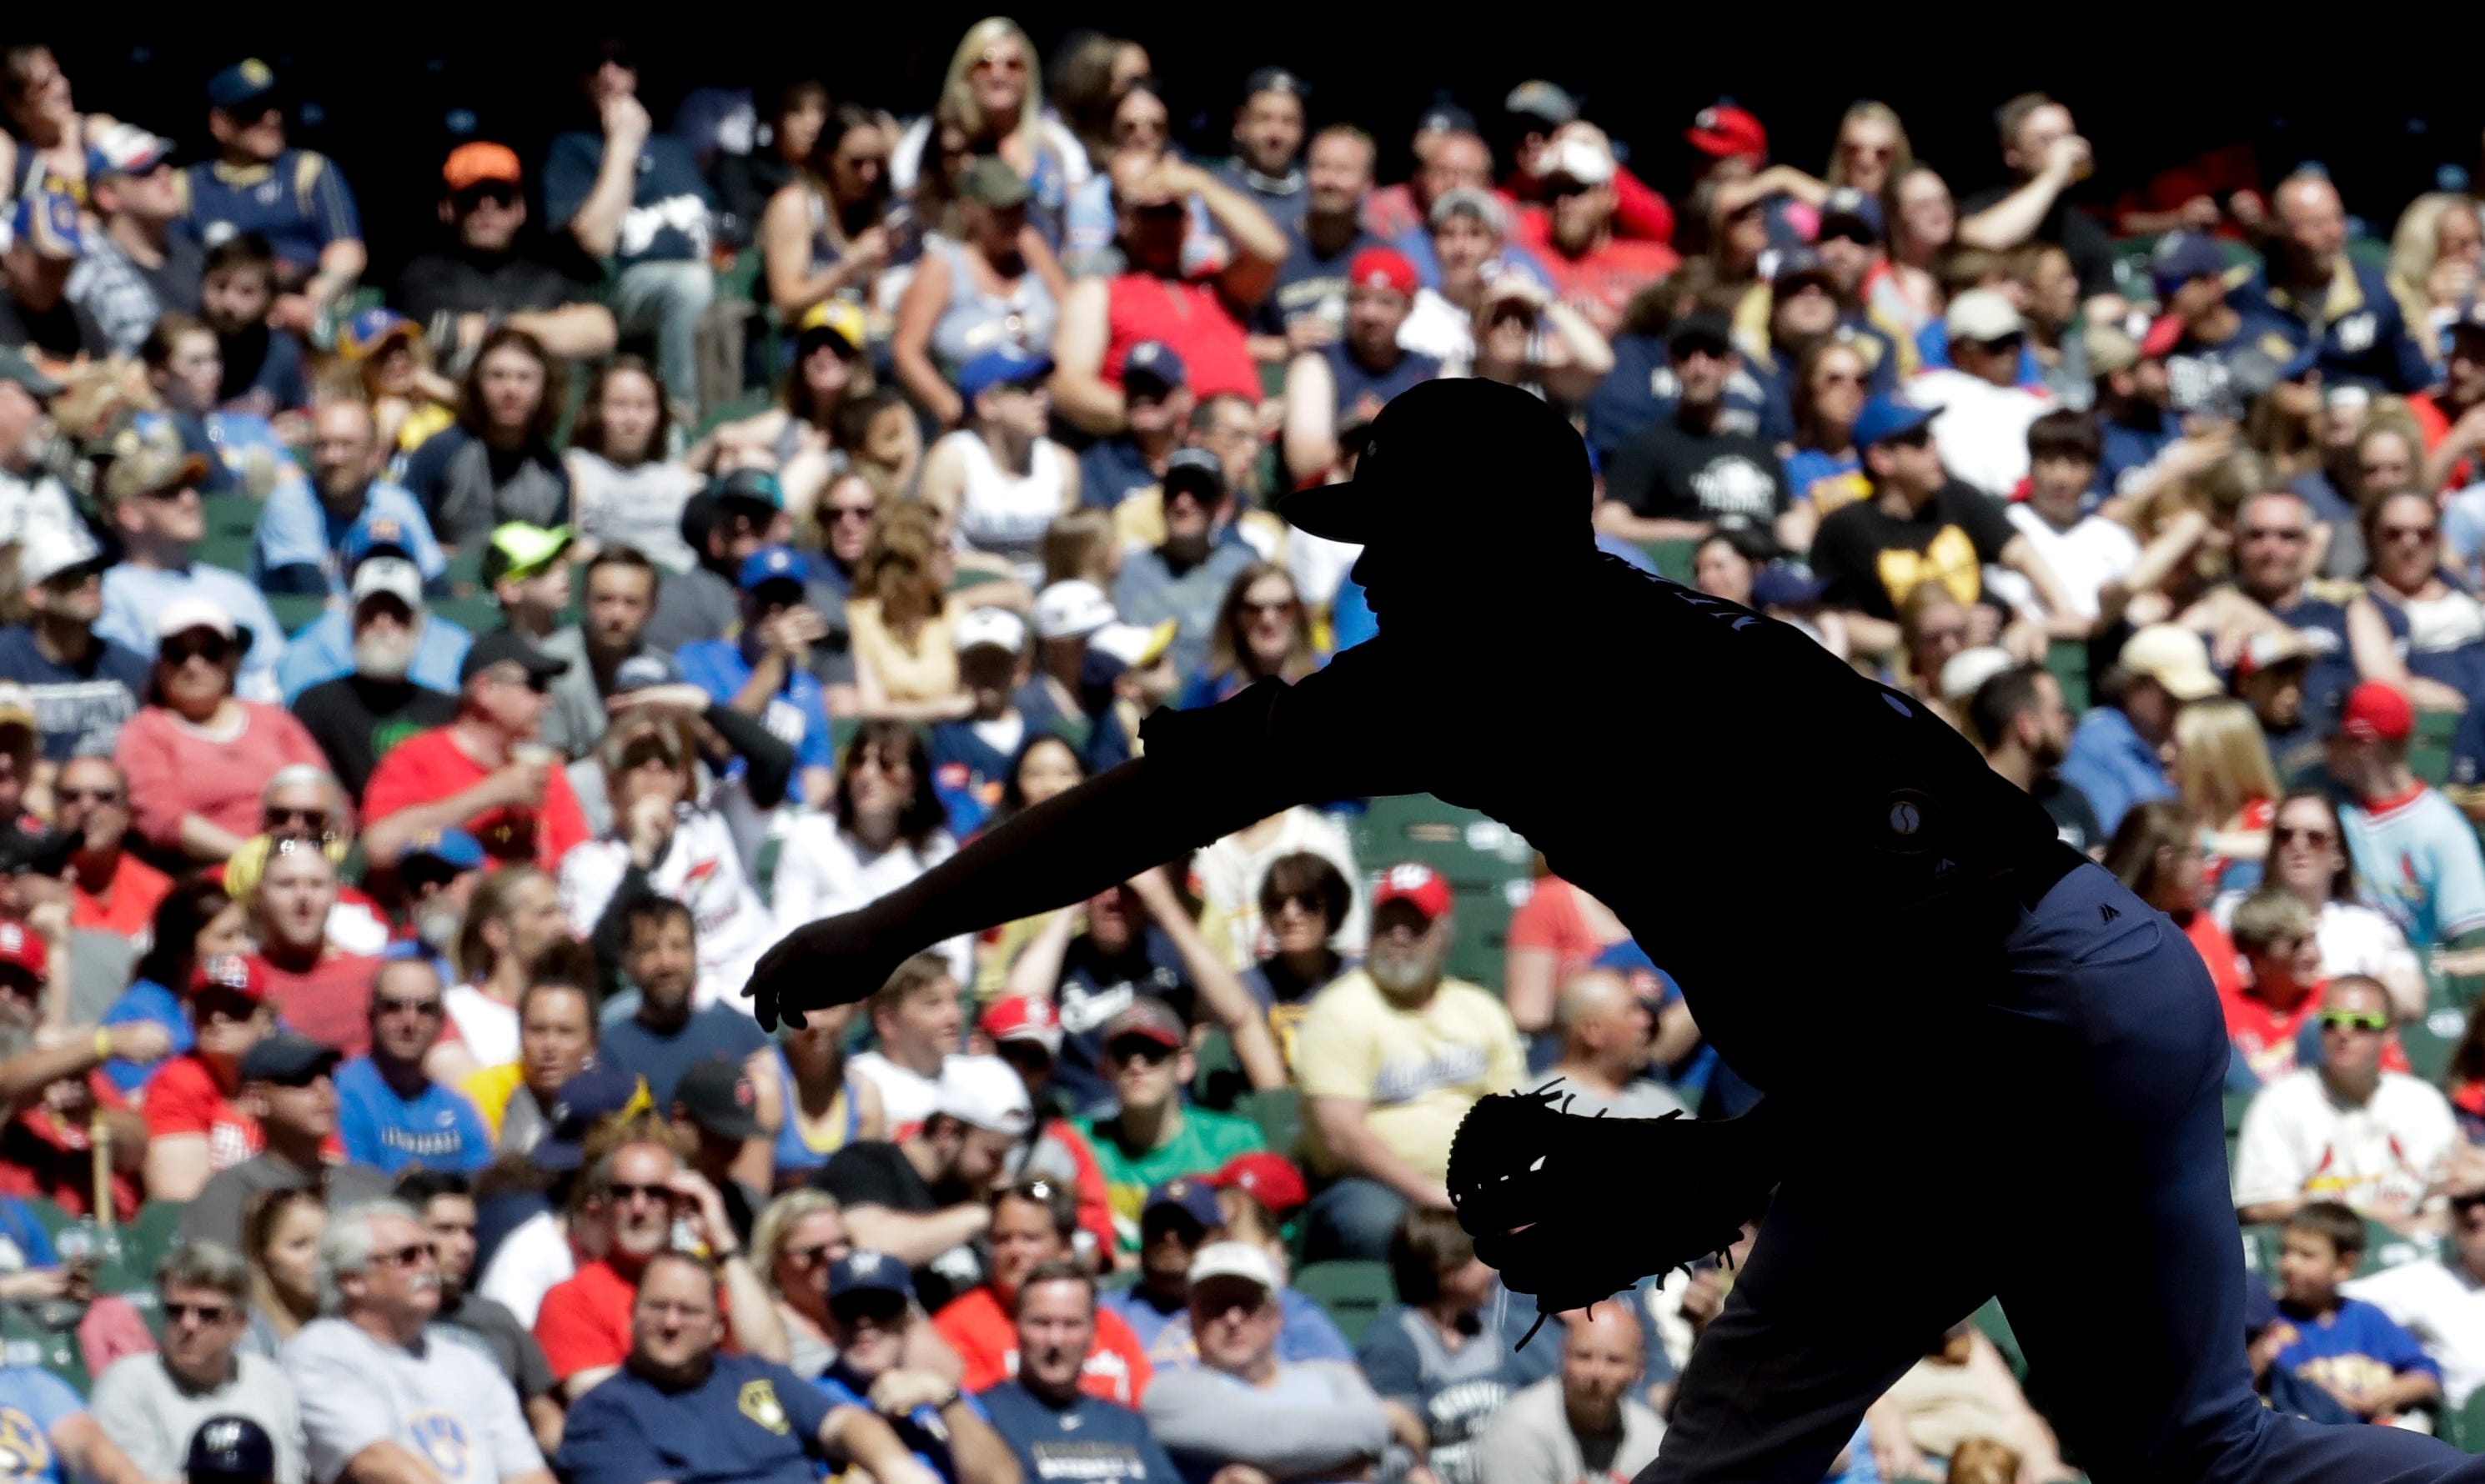 Cardinals 6, Brewers 4: Nelson loses control